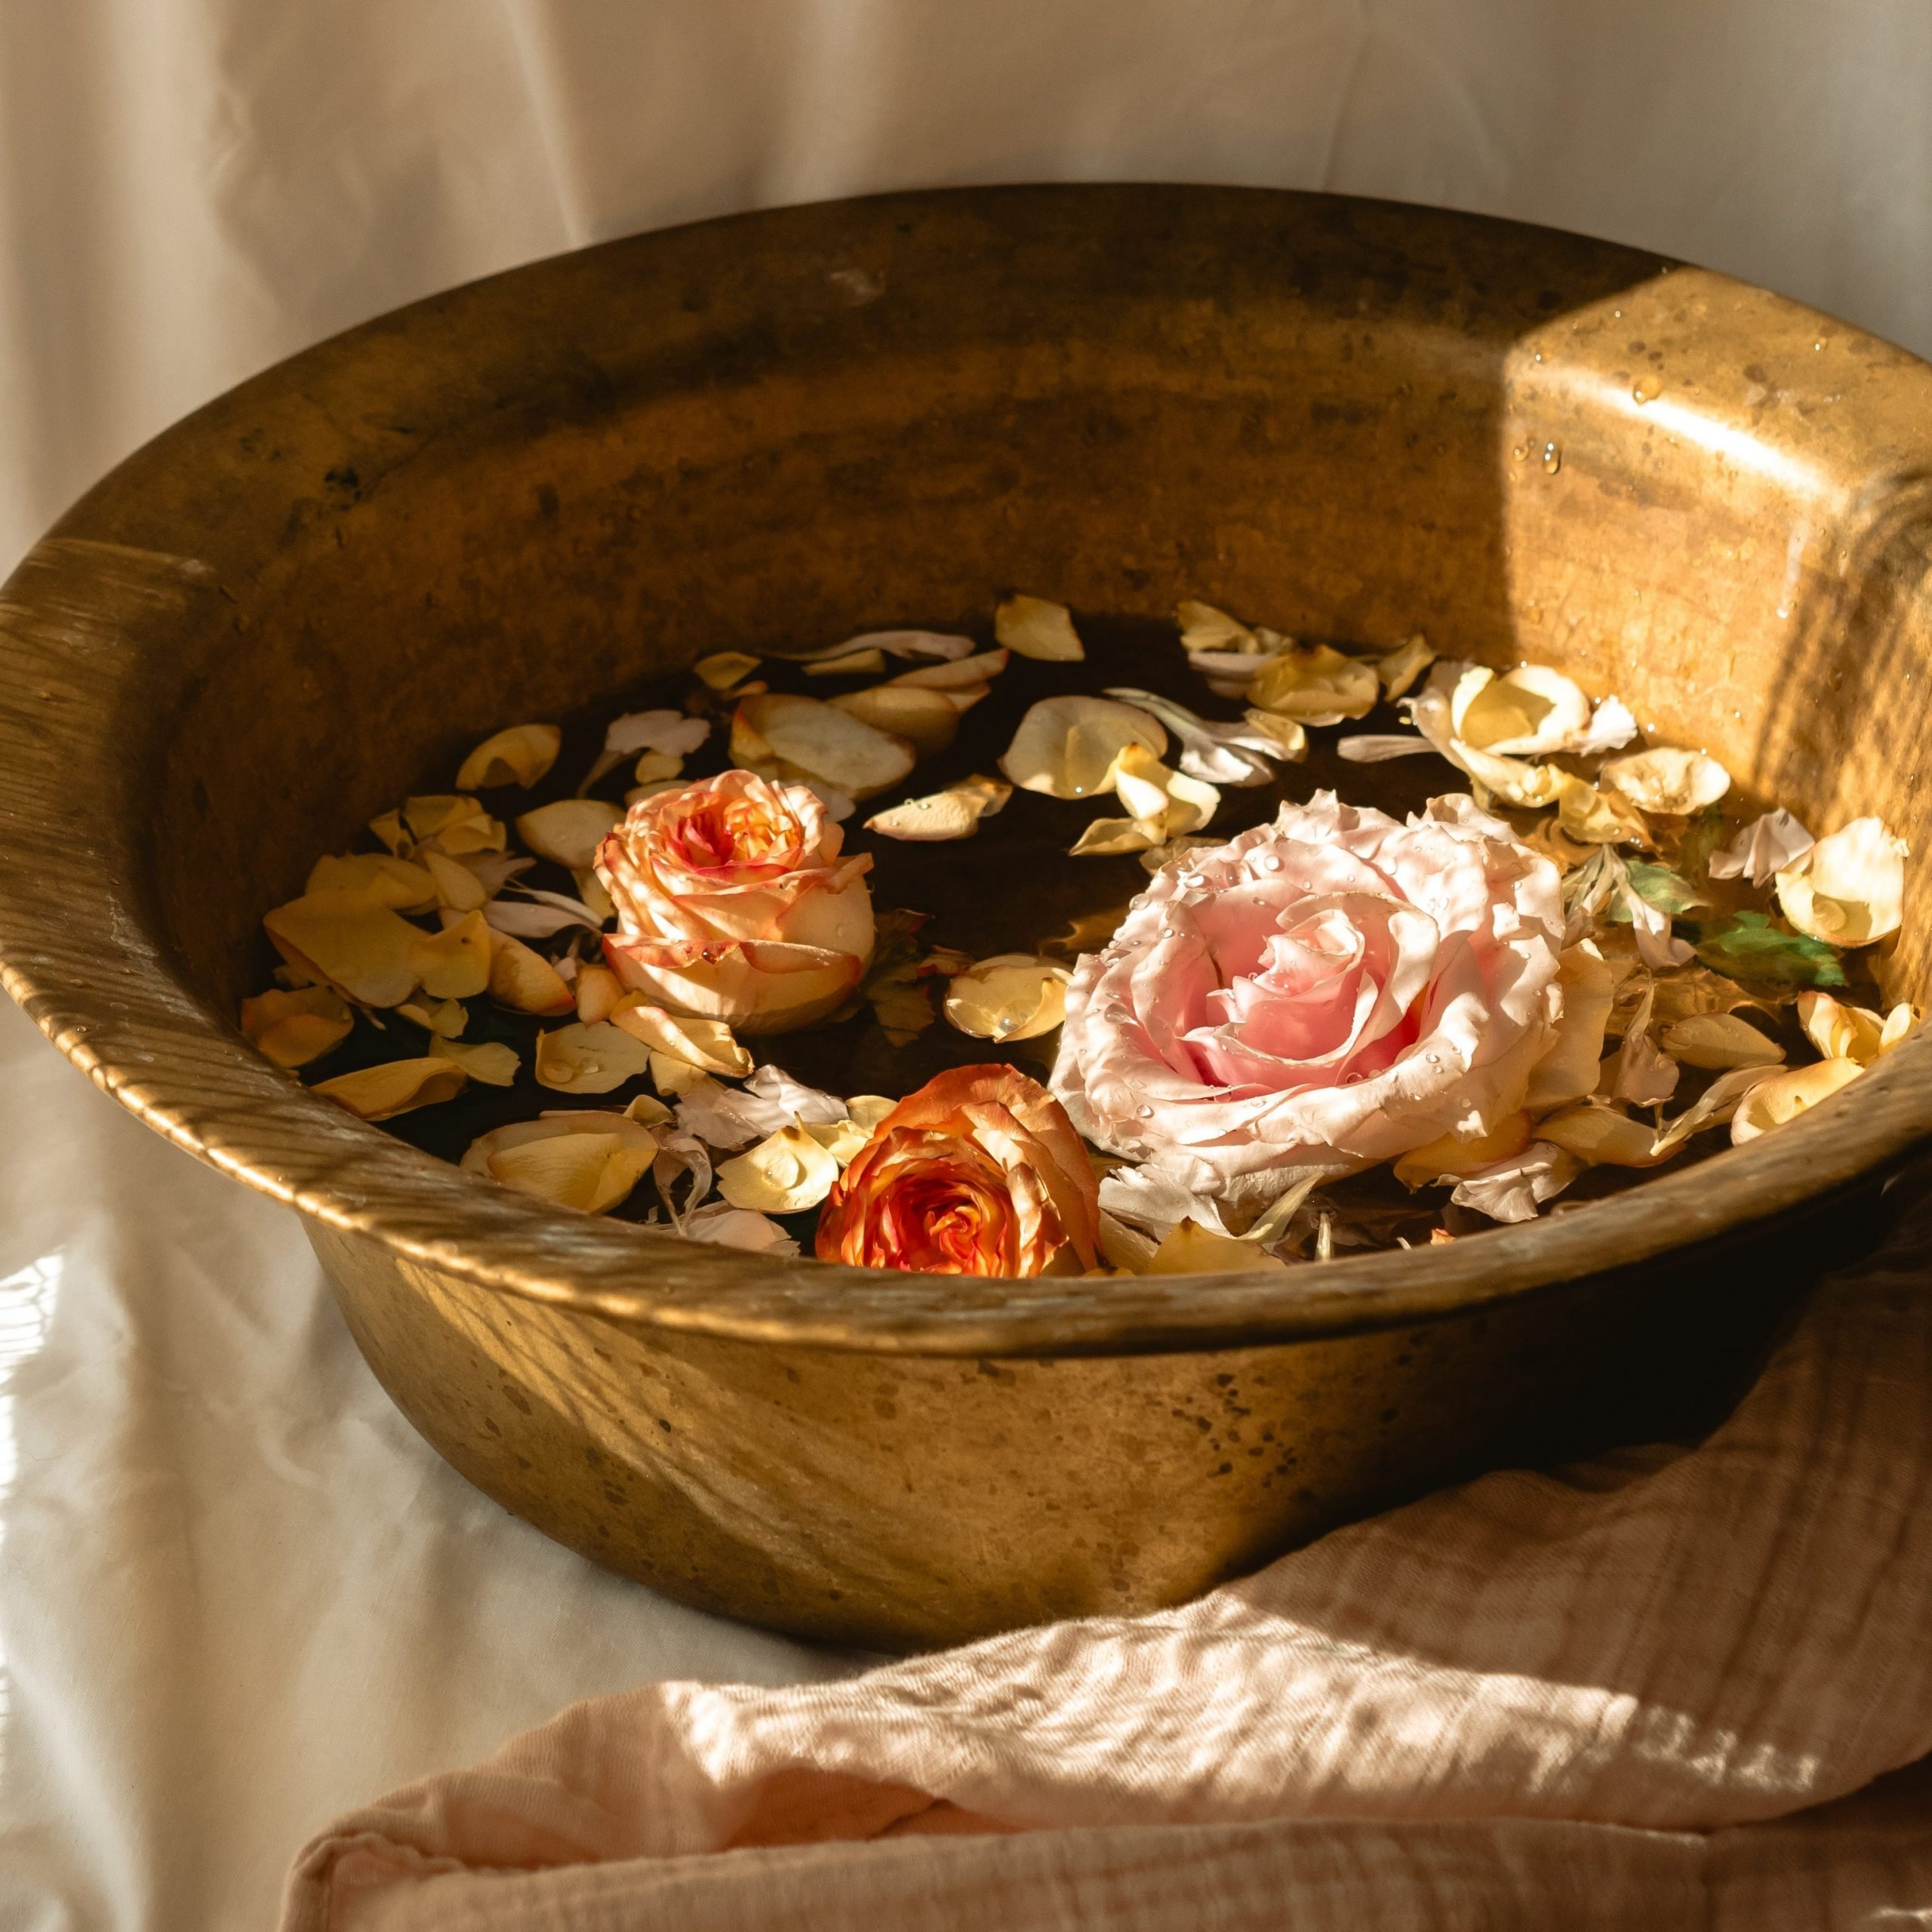 A bronze tub filled with water and 3 roses along with their petals.